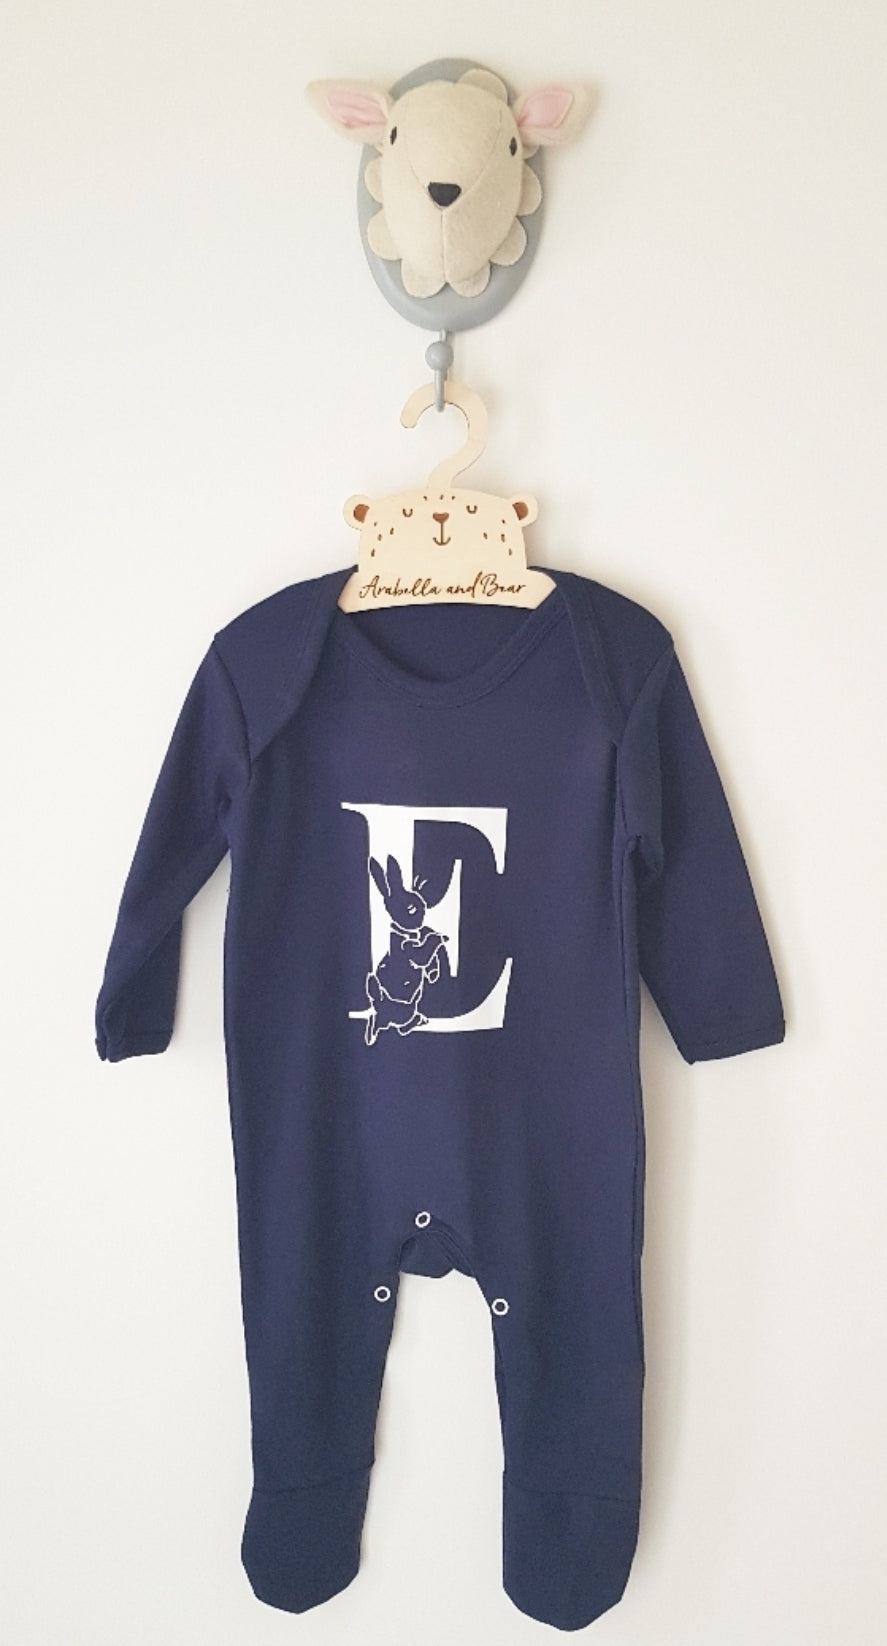 Peter Rabbit all in one - Navy Blue - Name / initial - loungewear